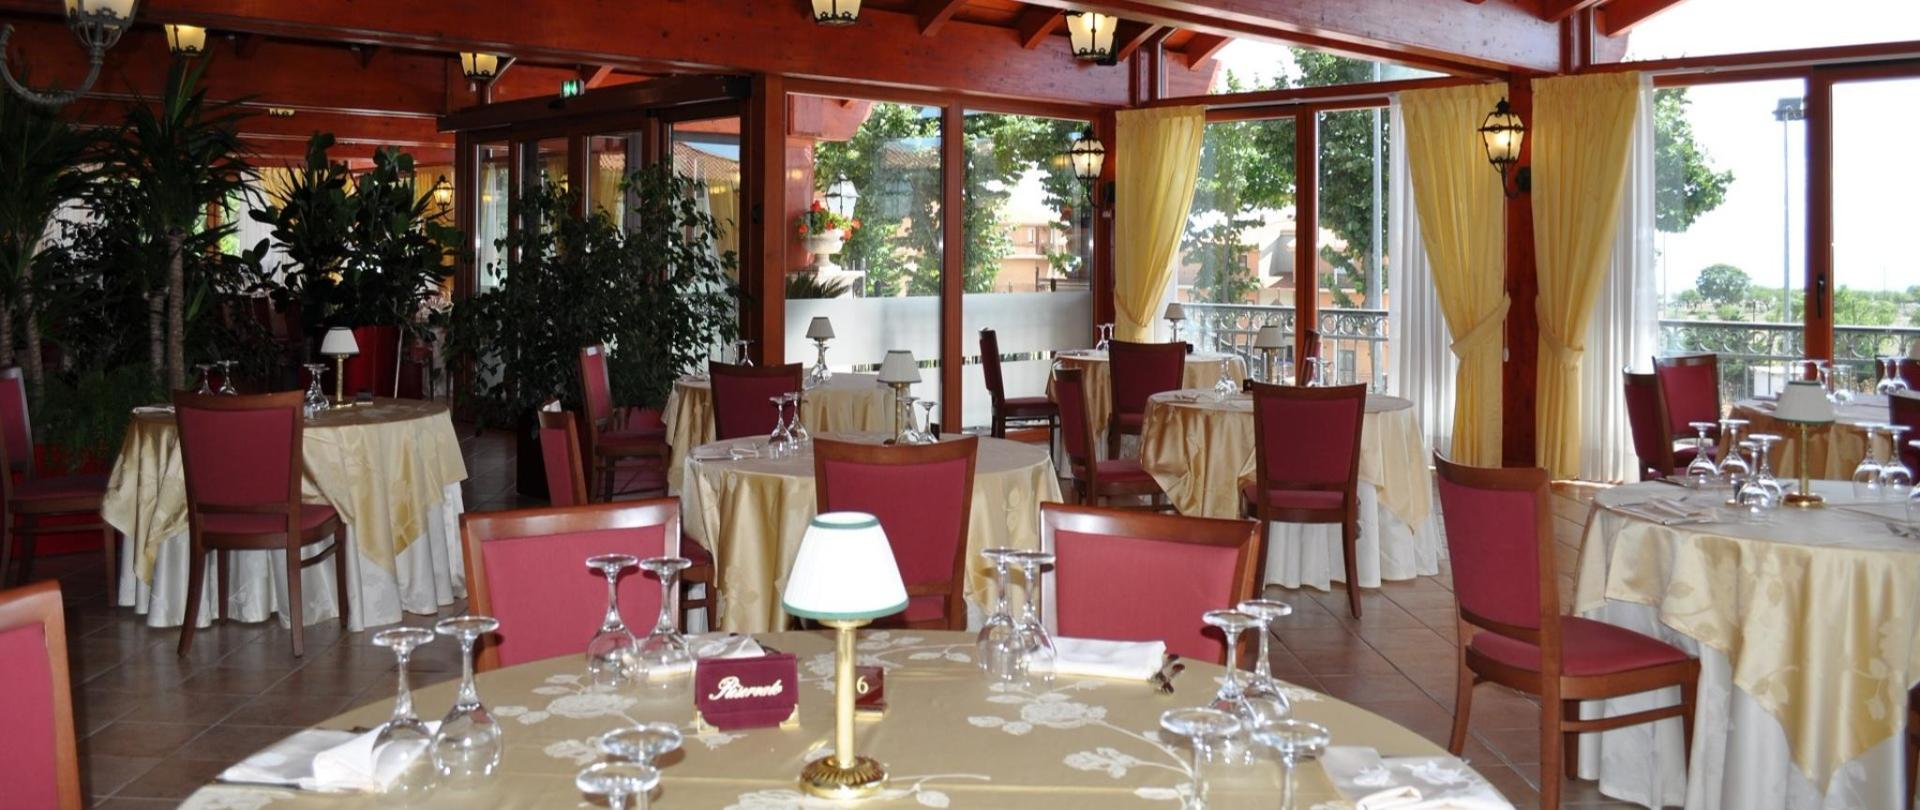 Veranda-Restaurant-Side-small